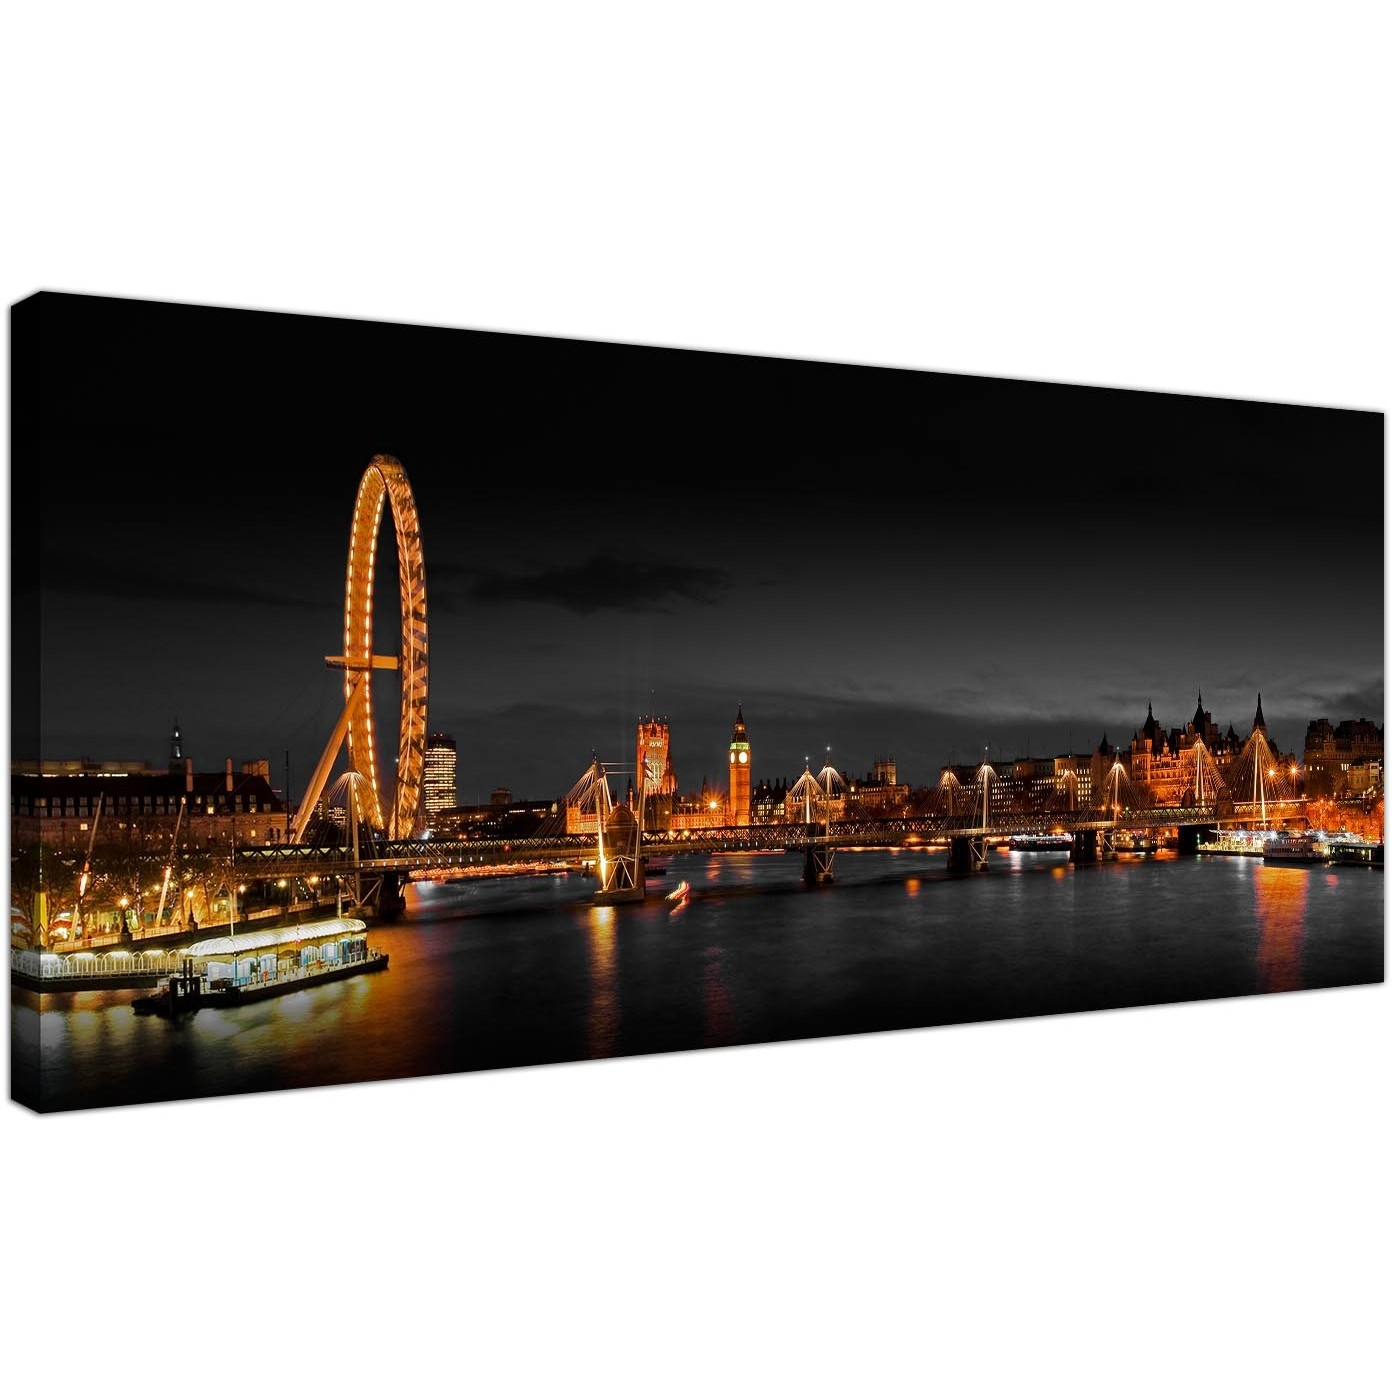 Panoramic Canvas Wall Art Of London Eye At Night For Your Living Room With Most Recently Released Panoramic Wall Art (View 9 of 15)